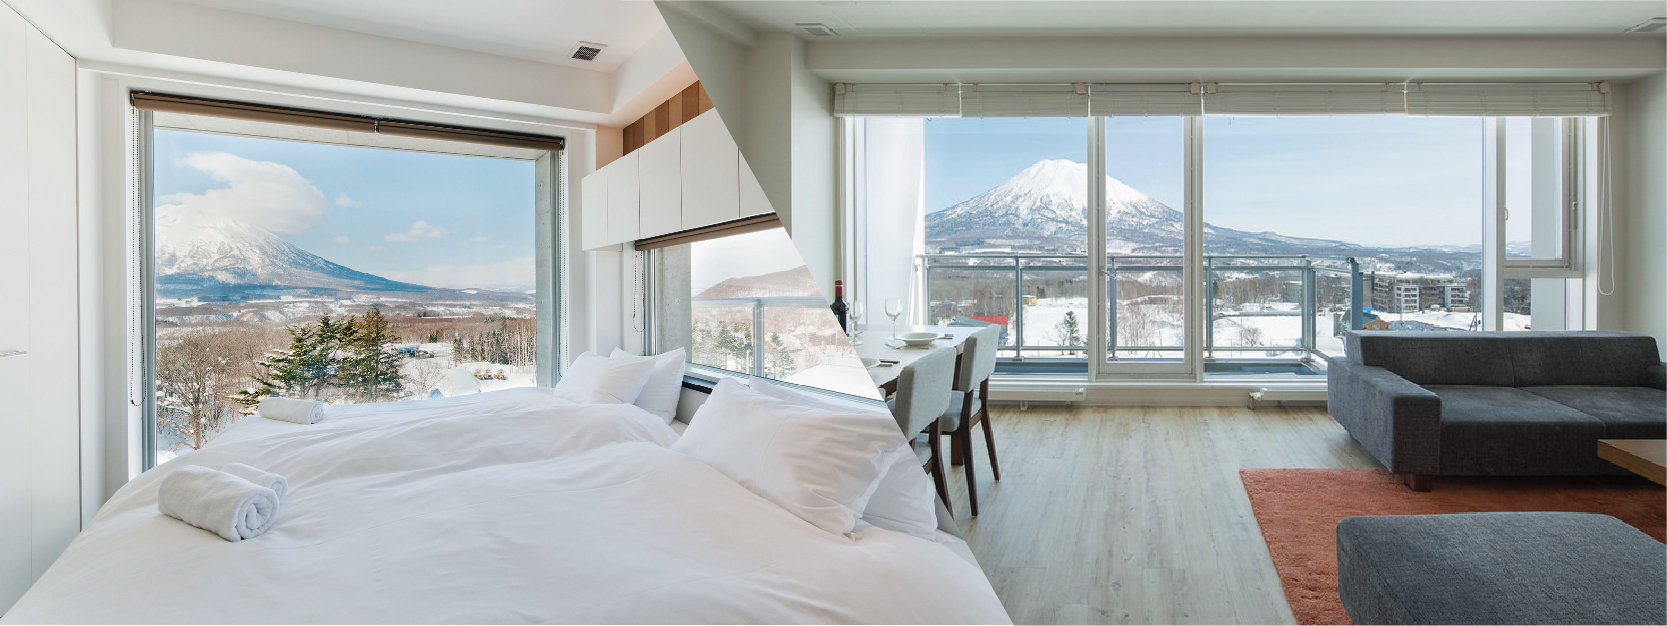 early bird discounts niseko landmark view kizuna niseko